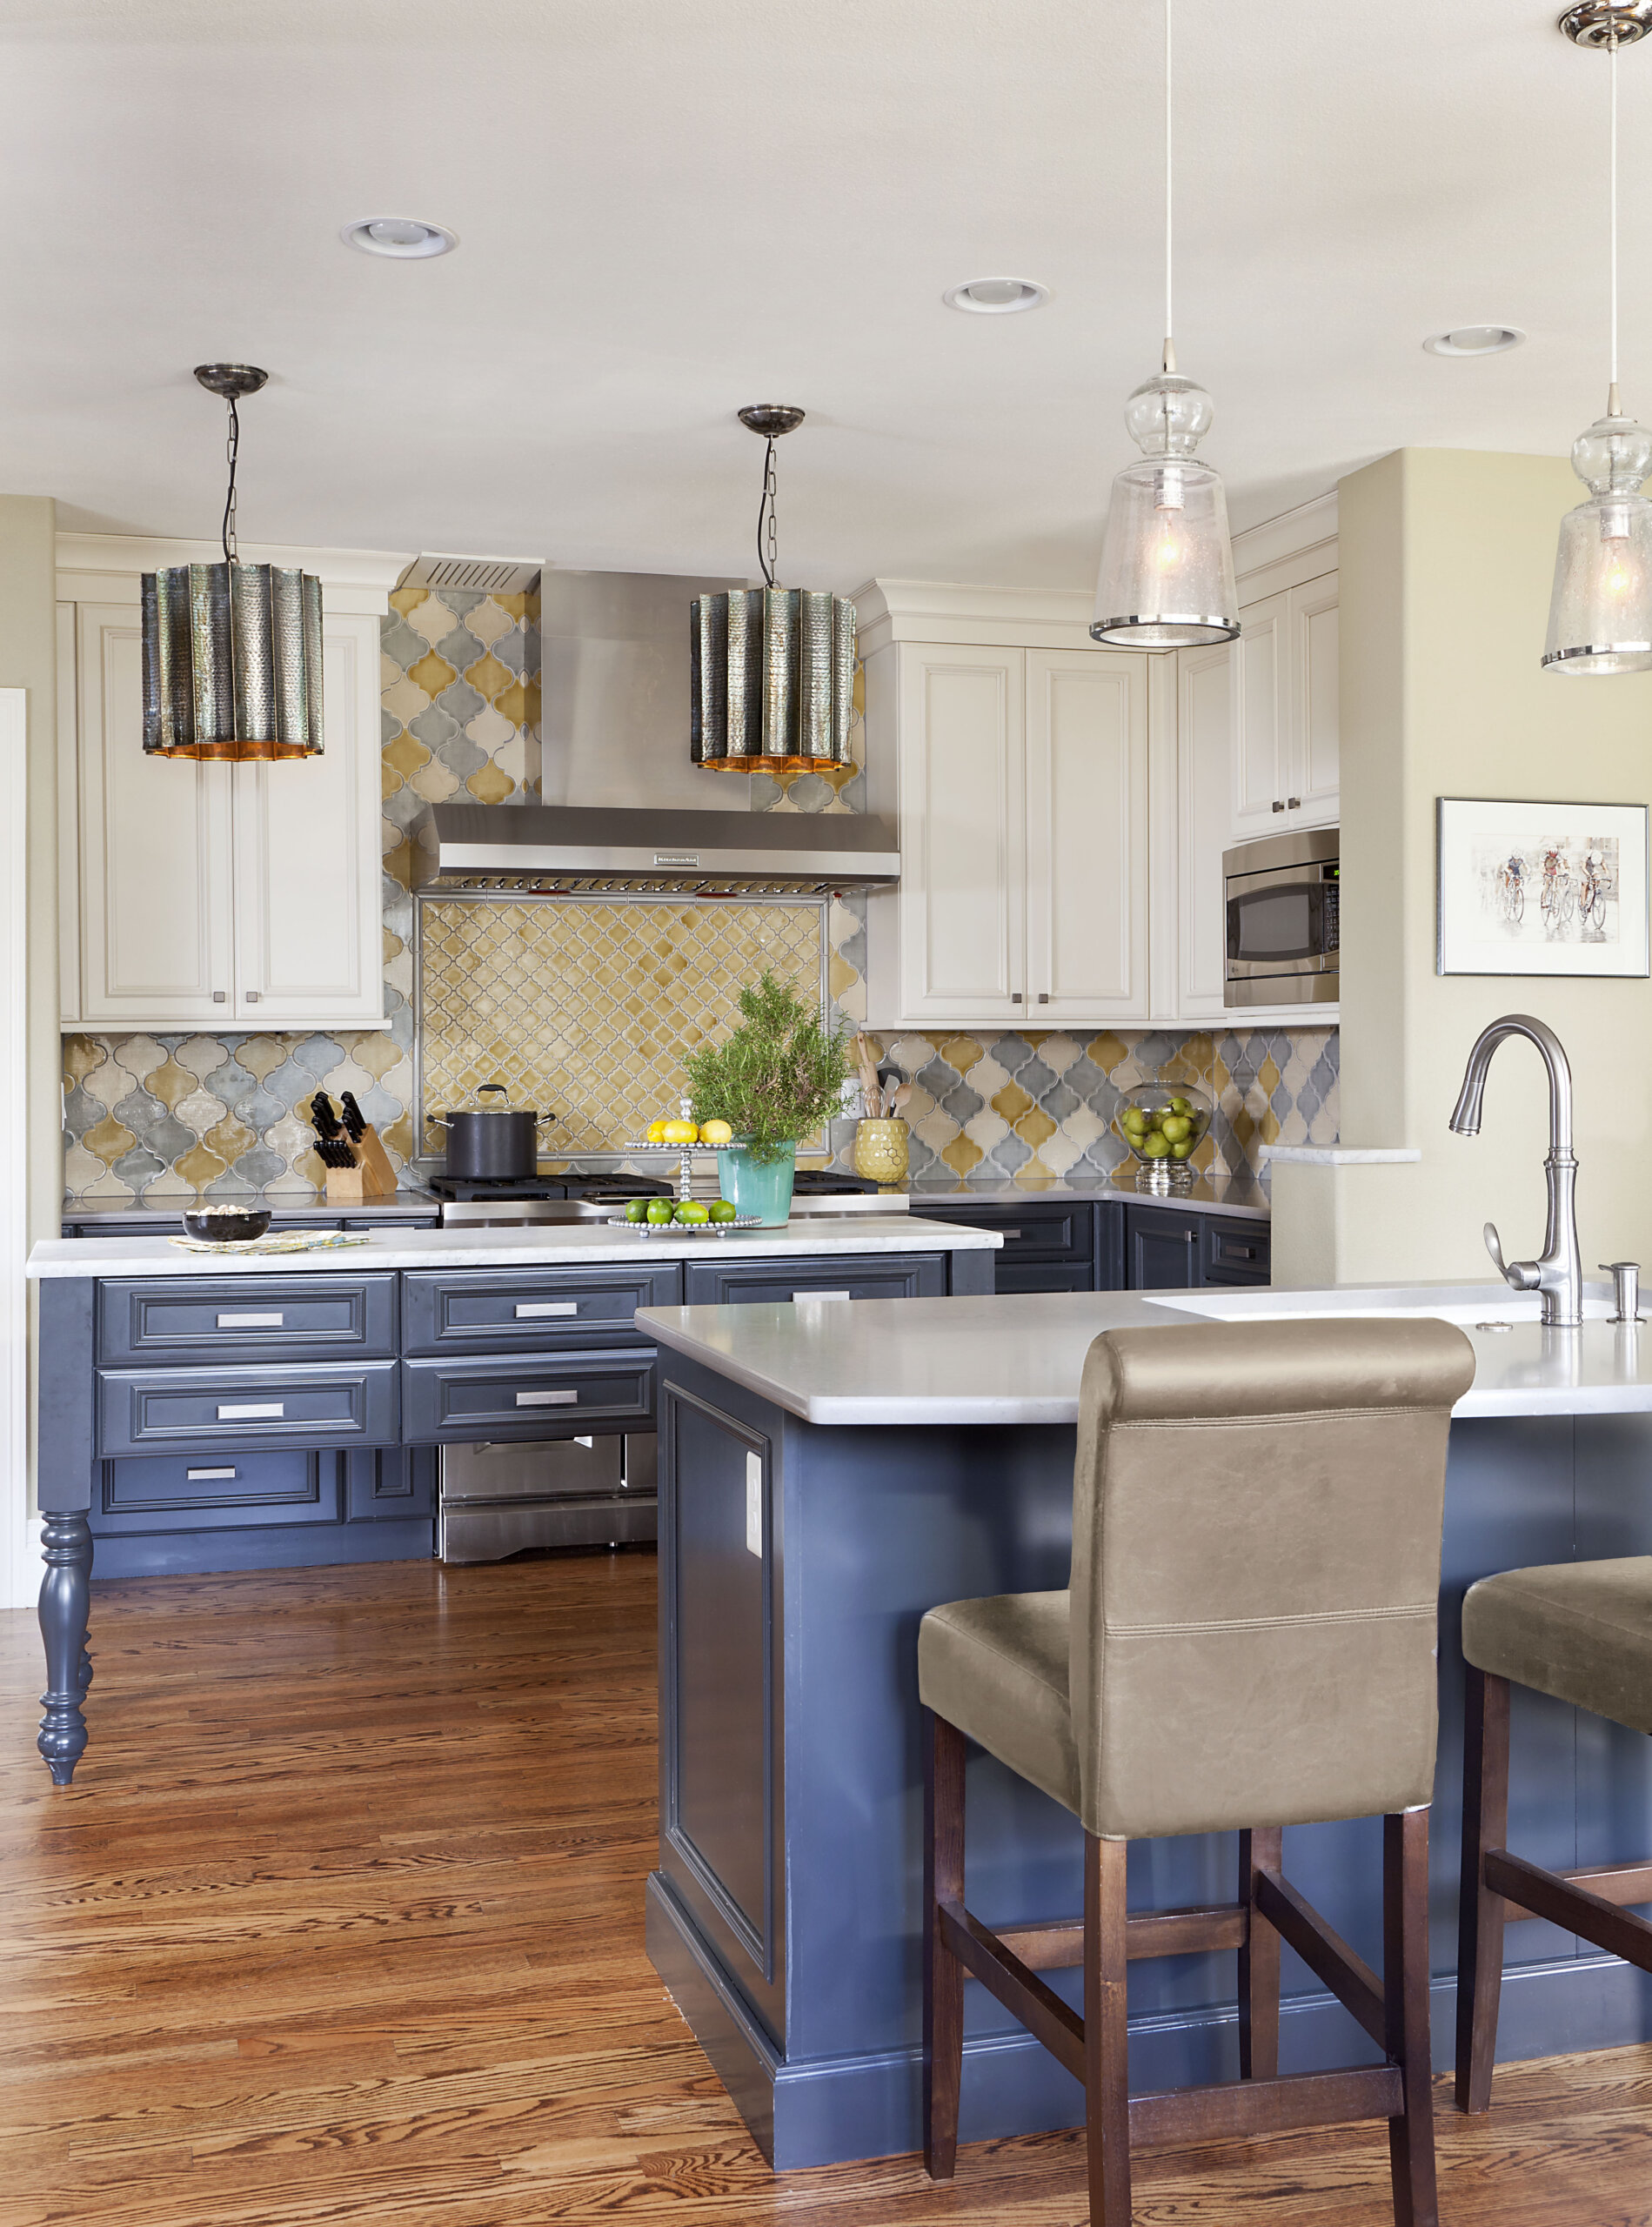 5 Basic Kitchen Remodel Projects You Can DIY